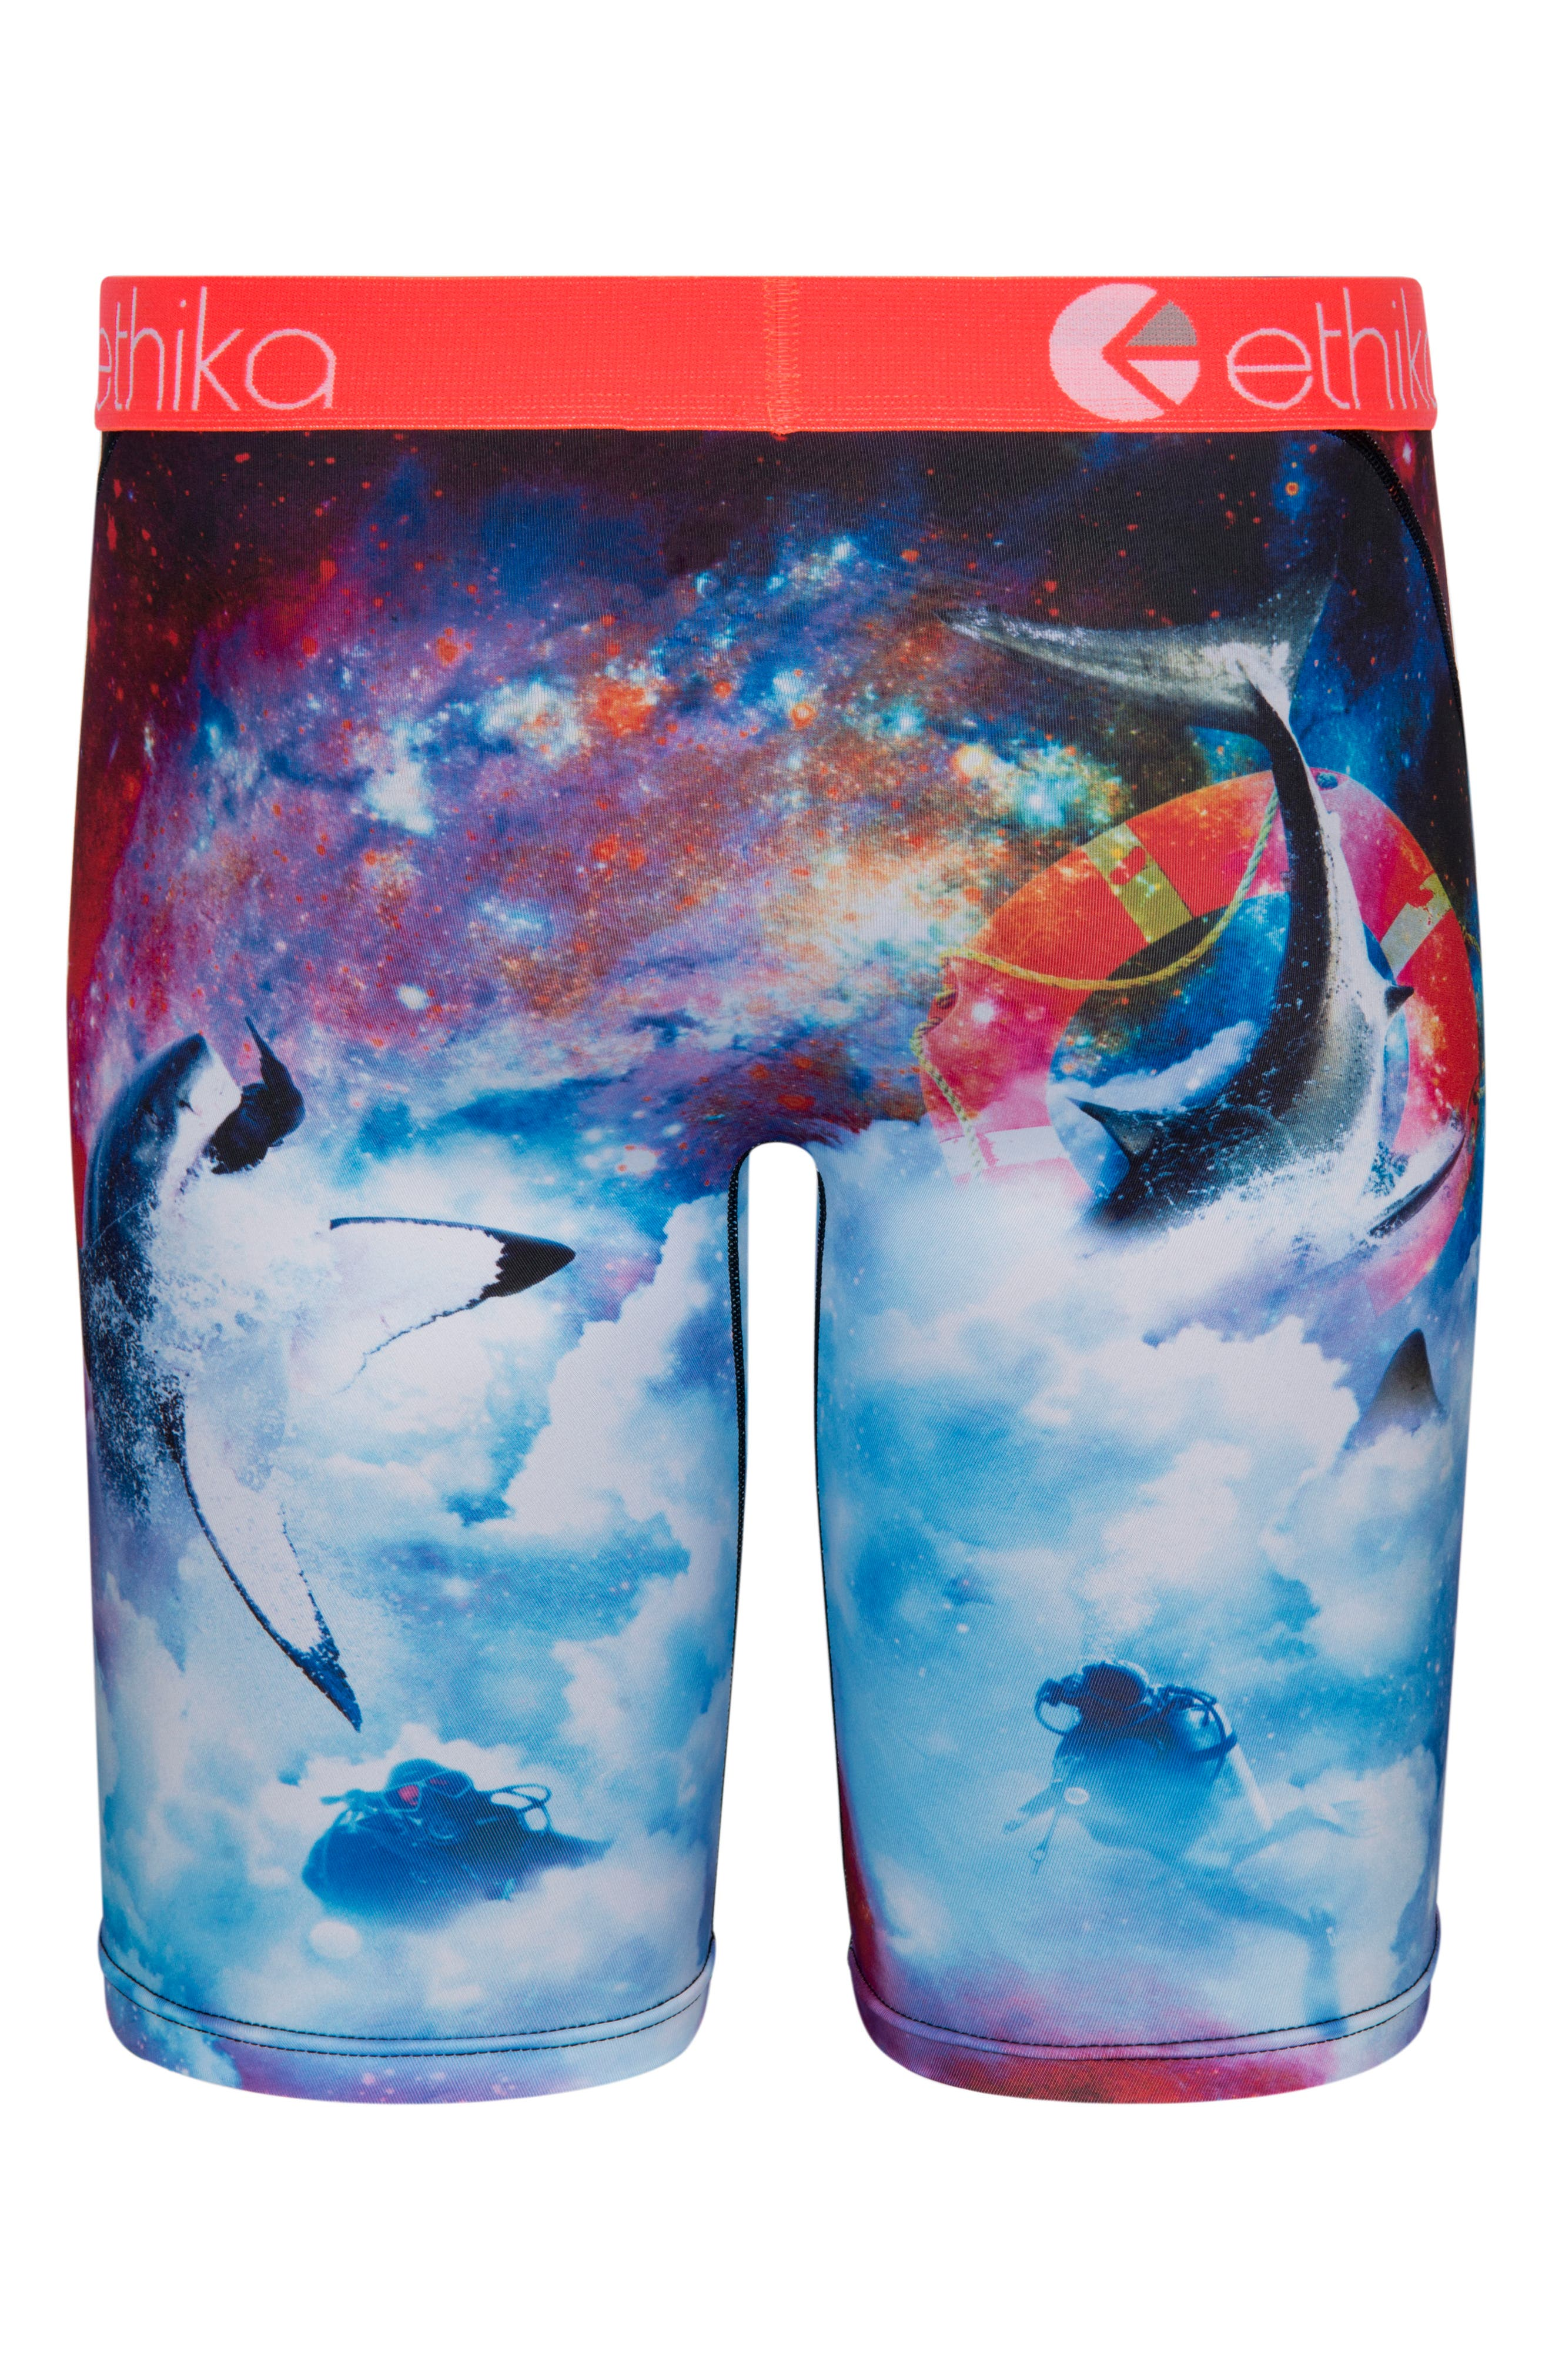 Space Sharks Stretch Boxer Briefs,                             Alternate thumbnail 2, color,